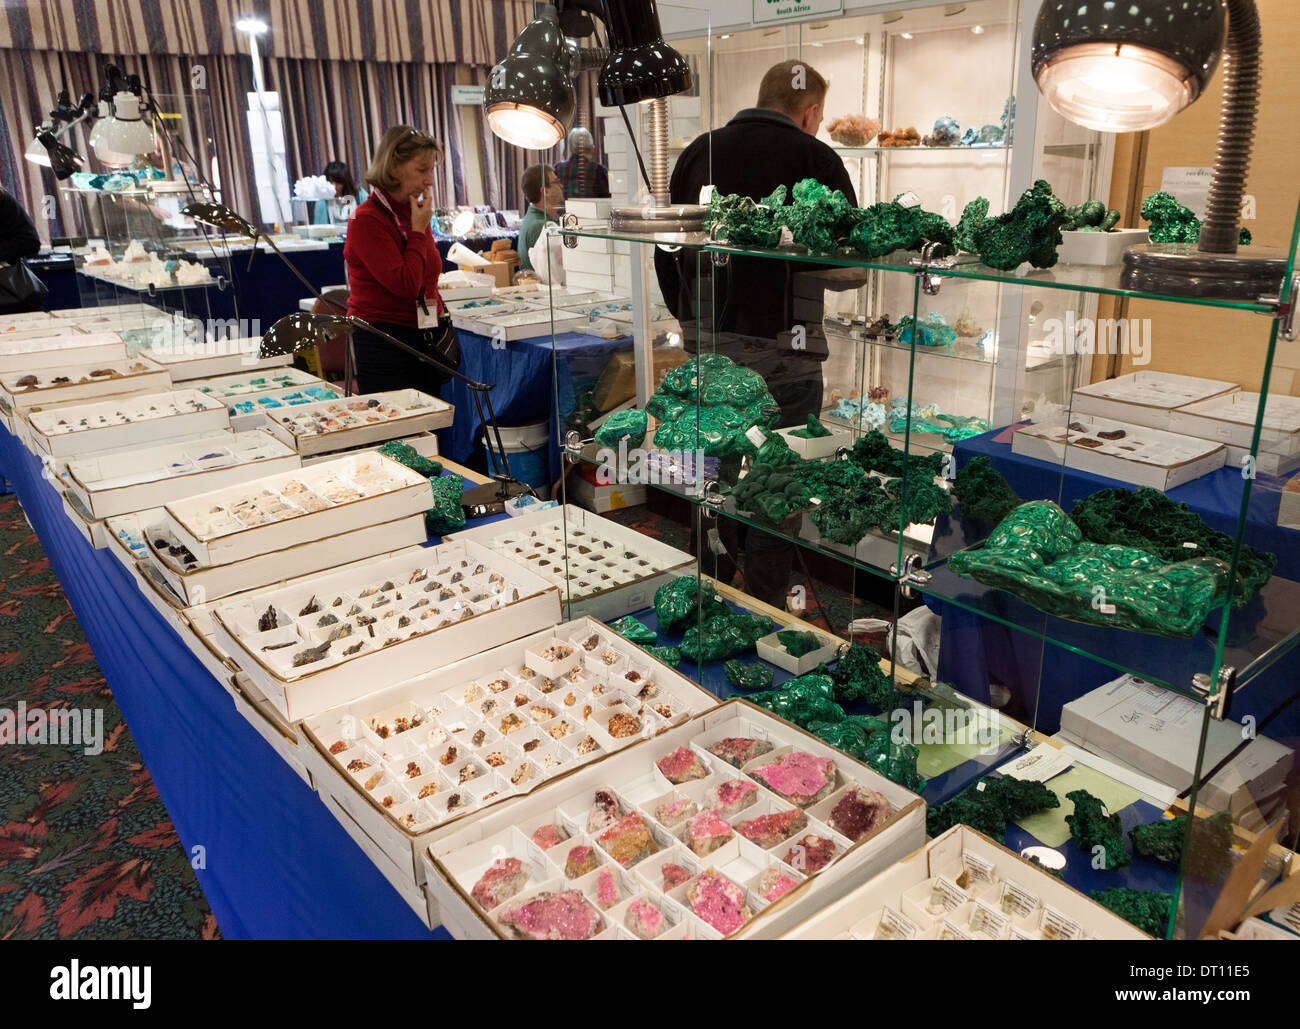 Displays of gems, minerals rocks, crystals, fossils, and meteorites at the yearly Gem and Mineral Show in Tucson, Arizona - Stock Image